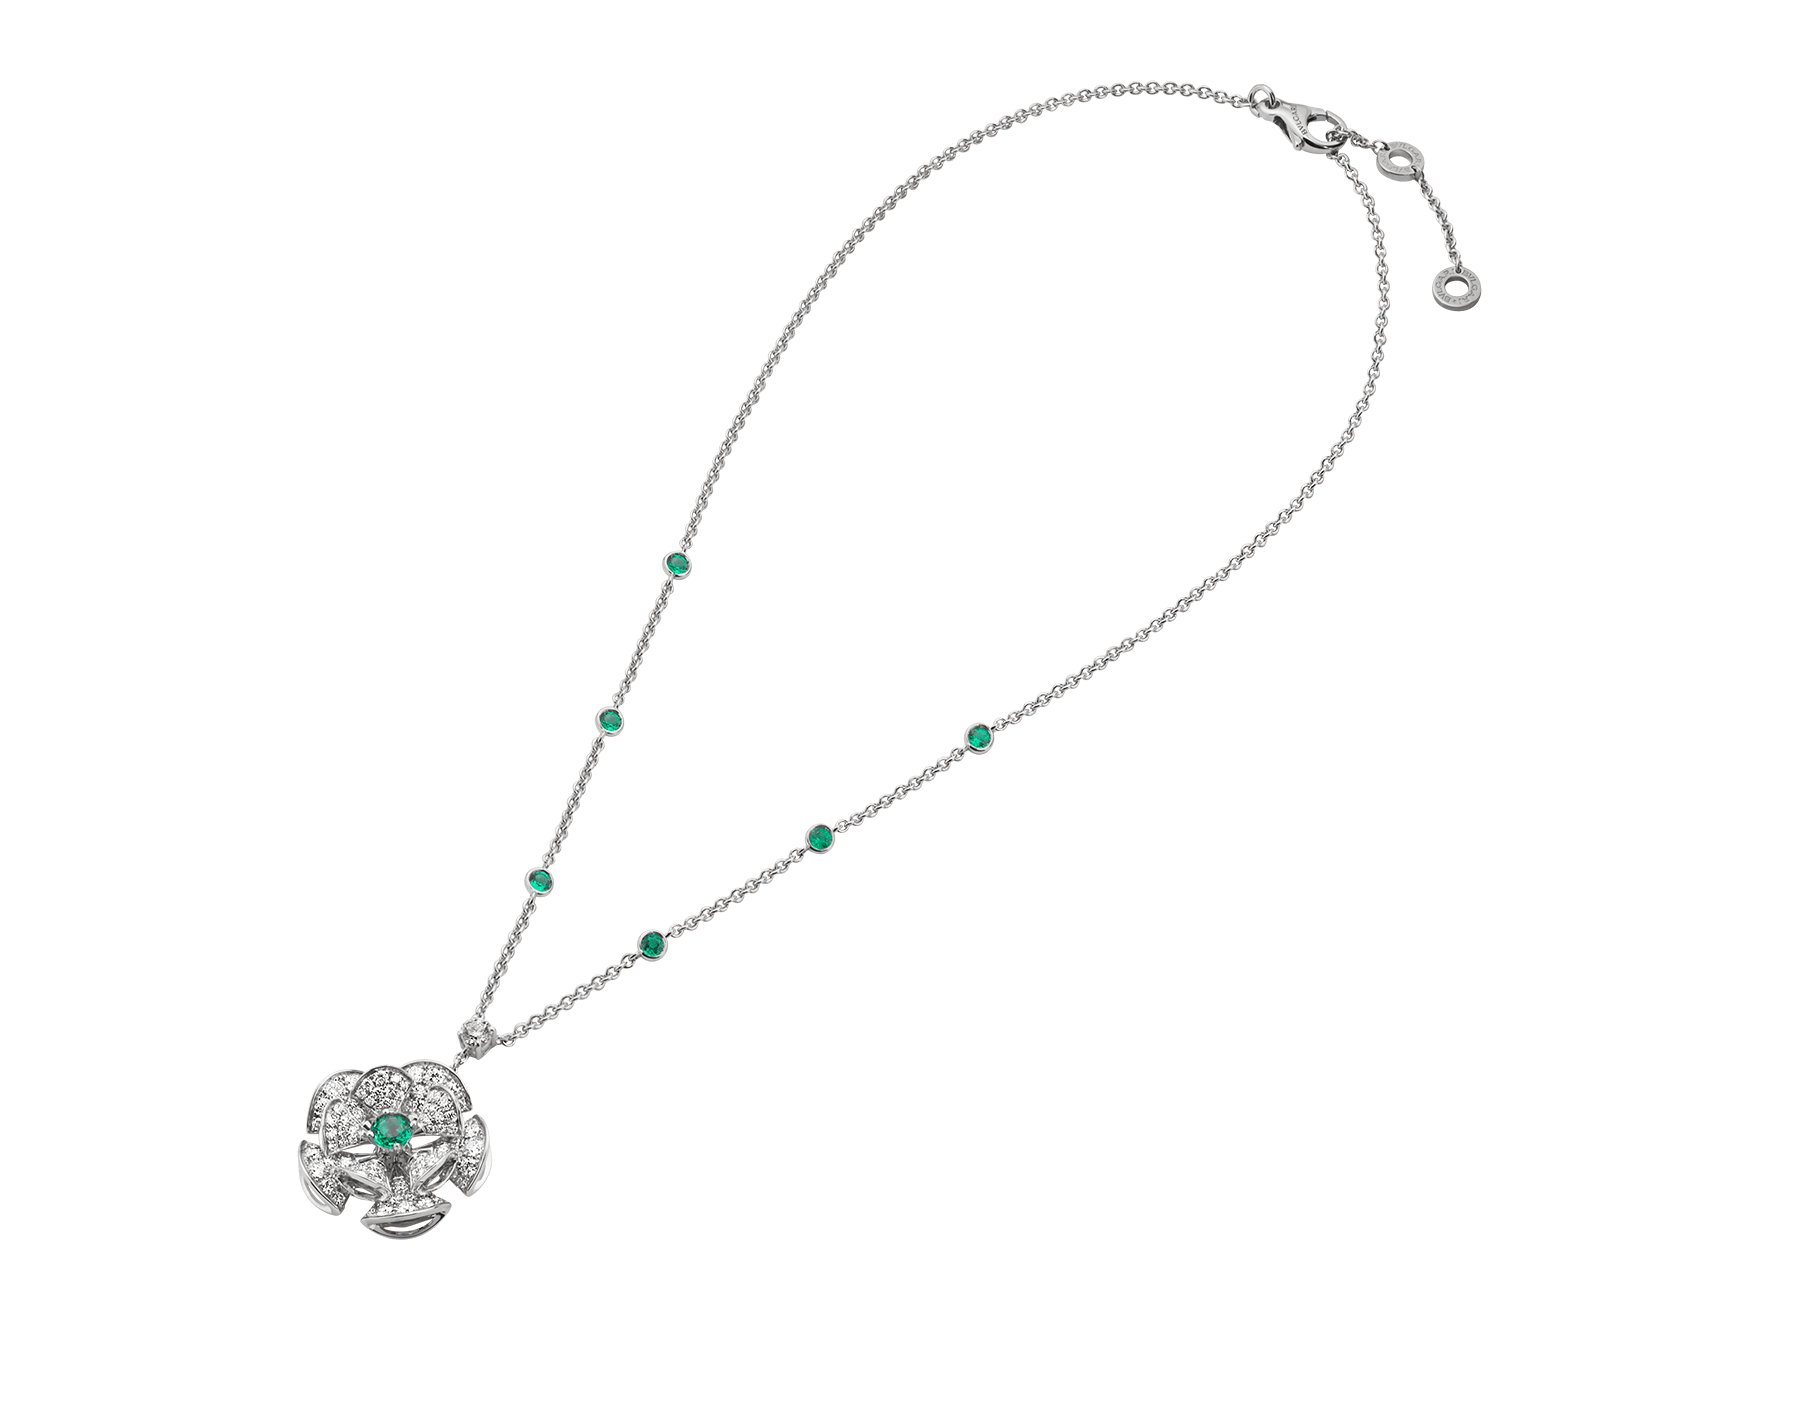 DIVAS' DREAM necklace in 18 kt white gold with chain set with emeralds and a diamond, and with a pendant set with a central enerald and pavé diamonds. 352626 image 2